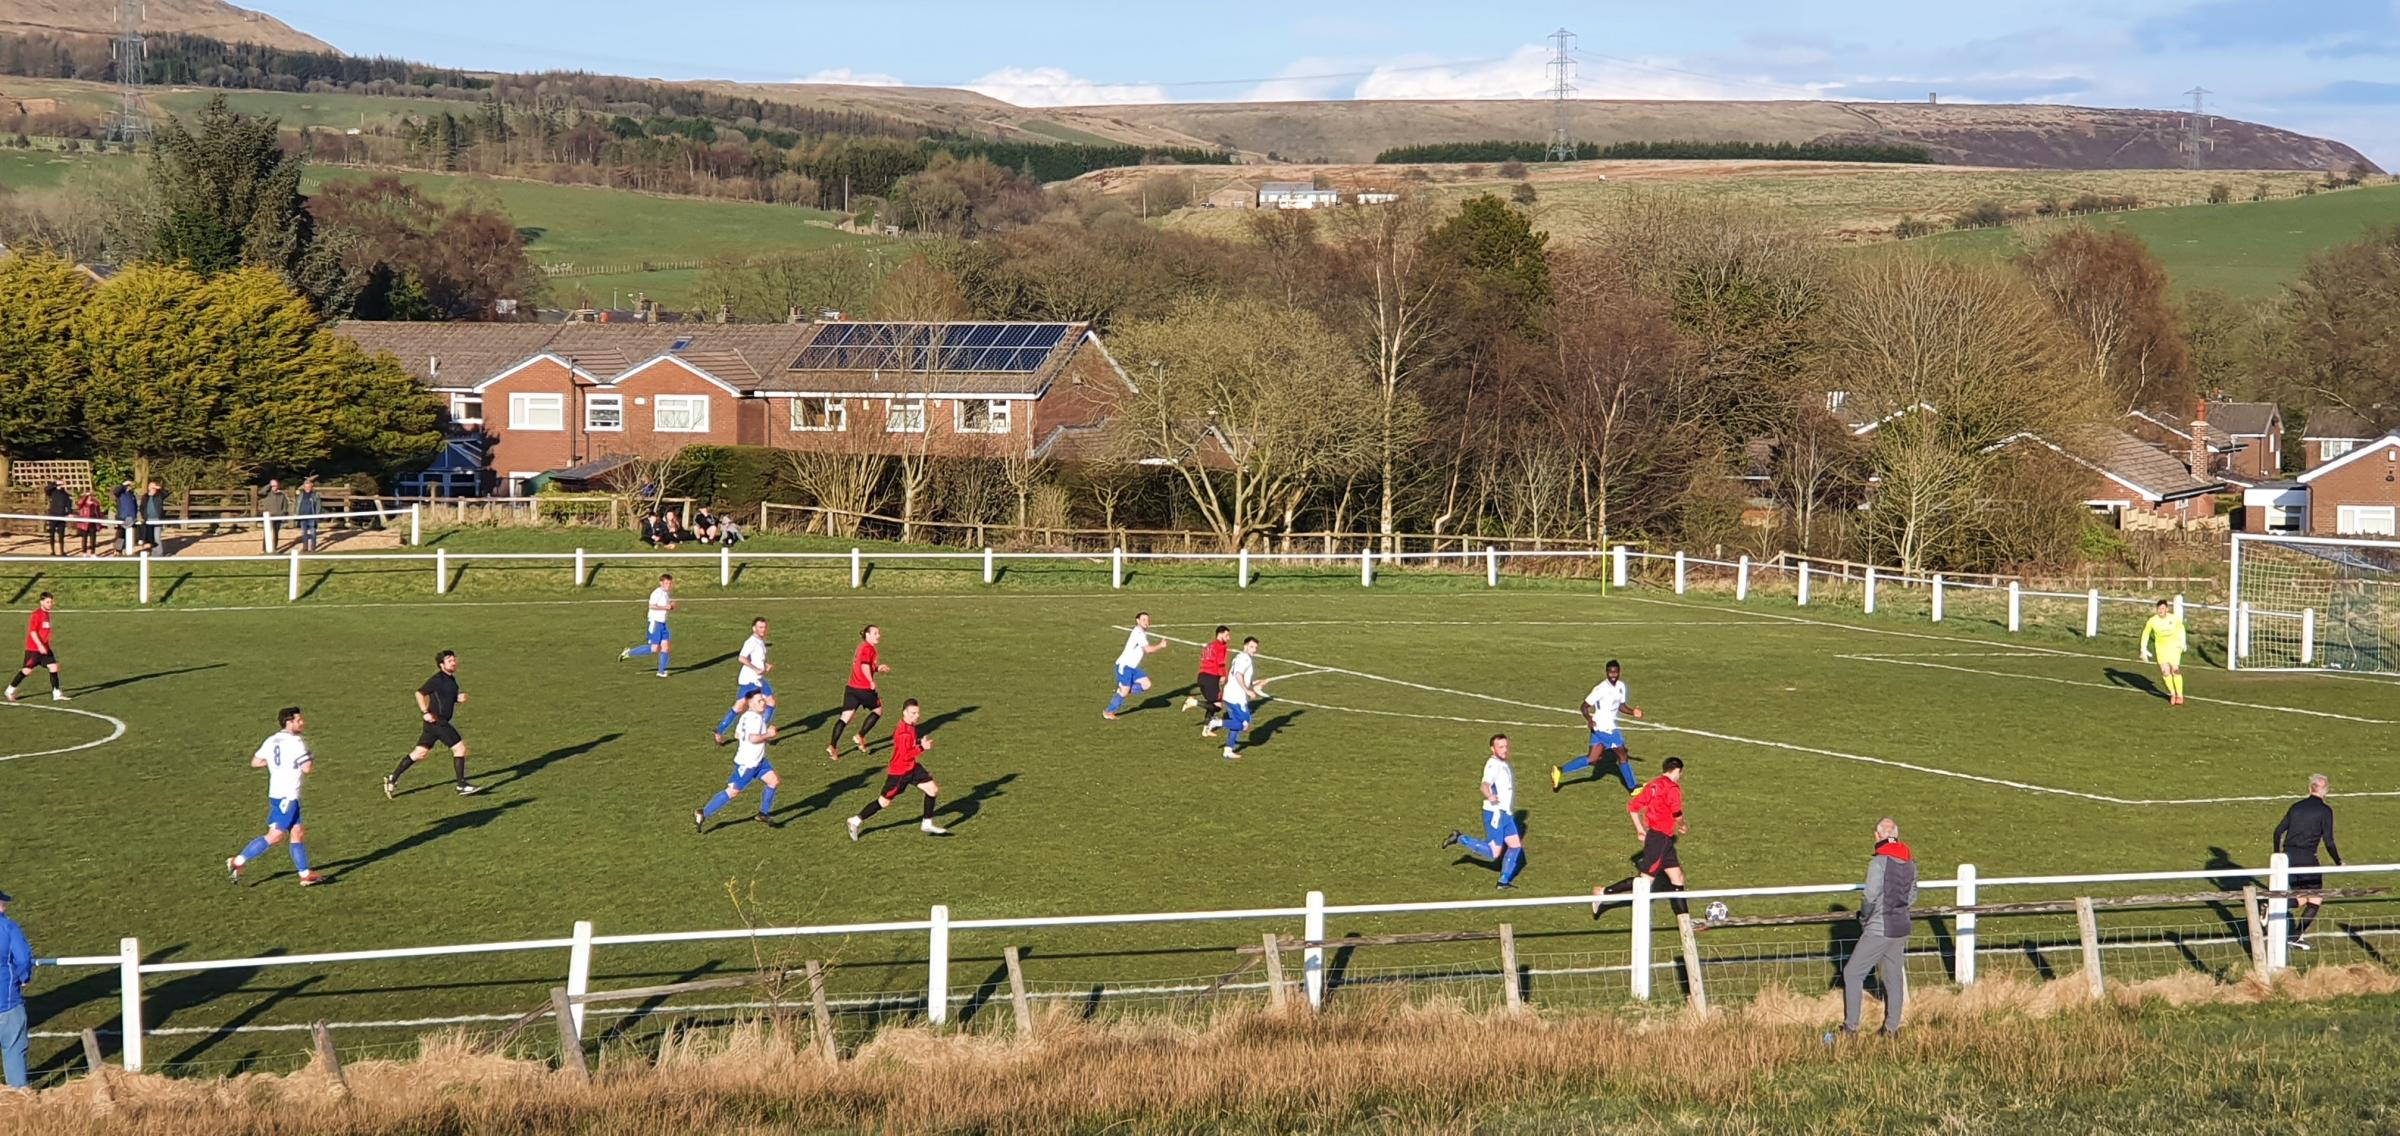 The view from afar as Turton took on Daisy Hill